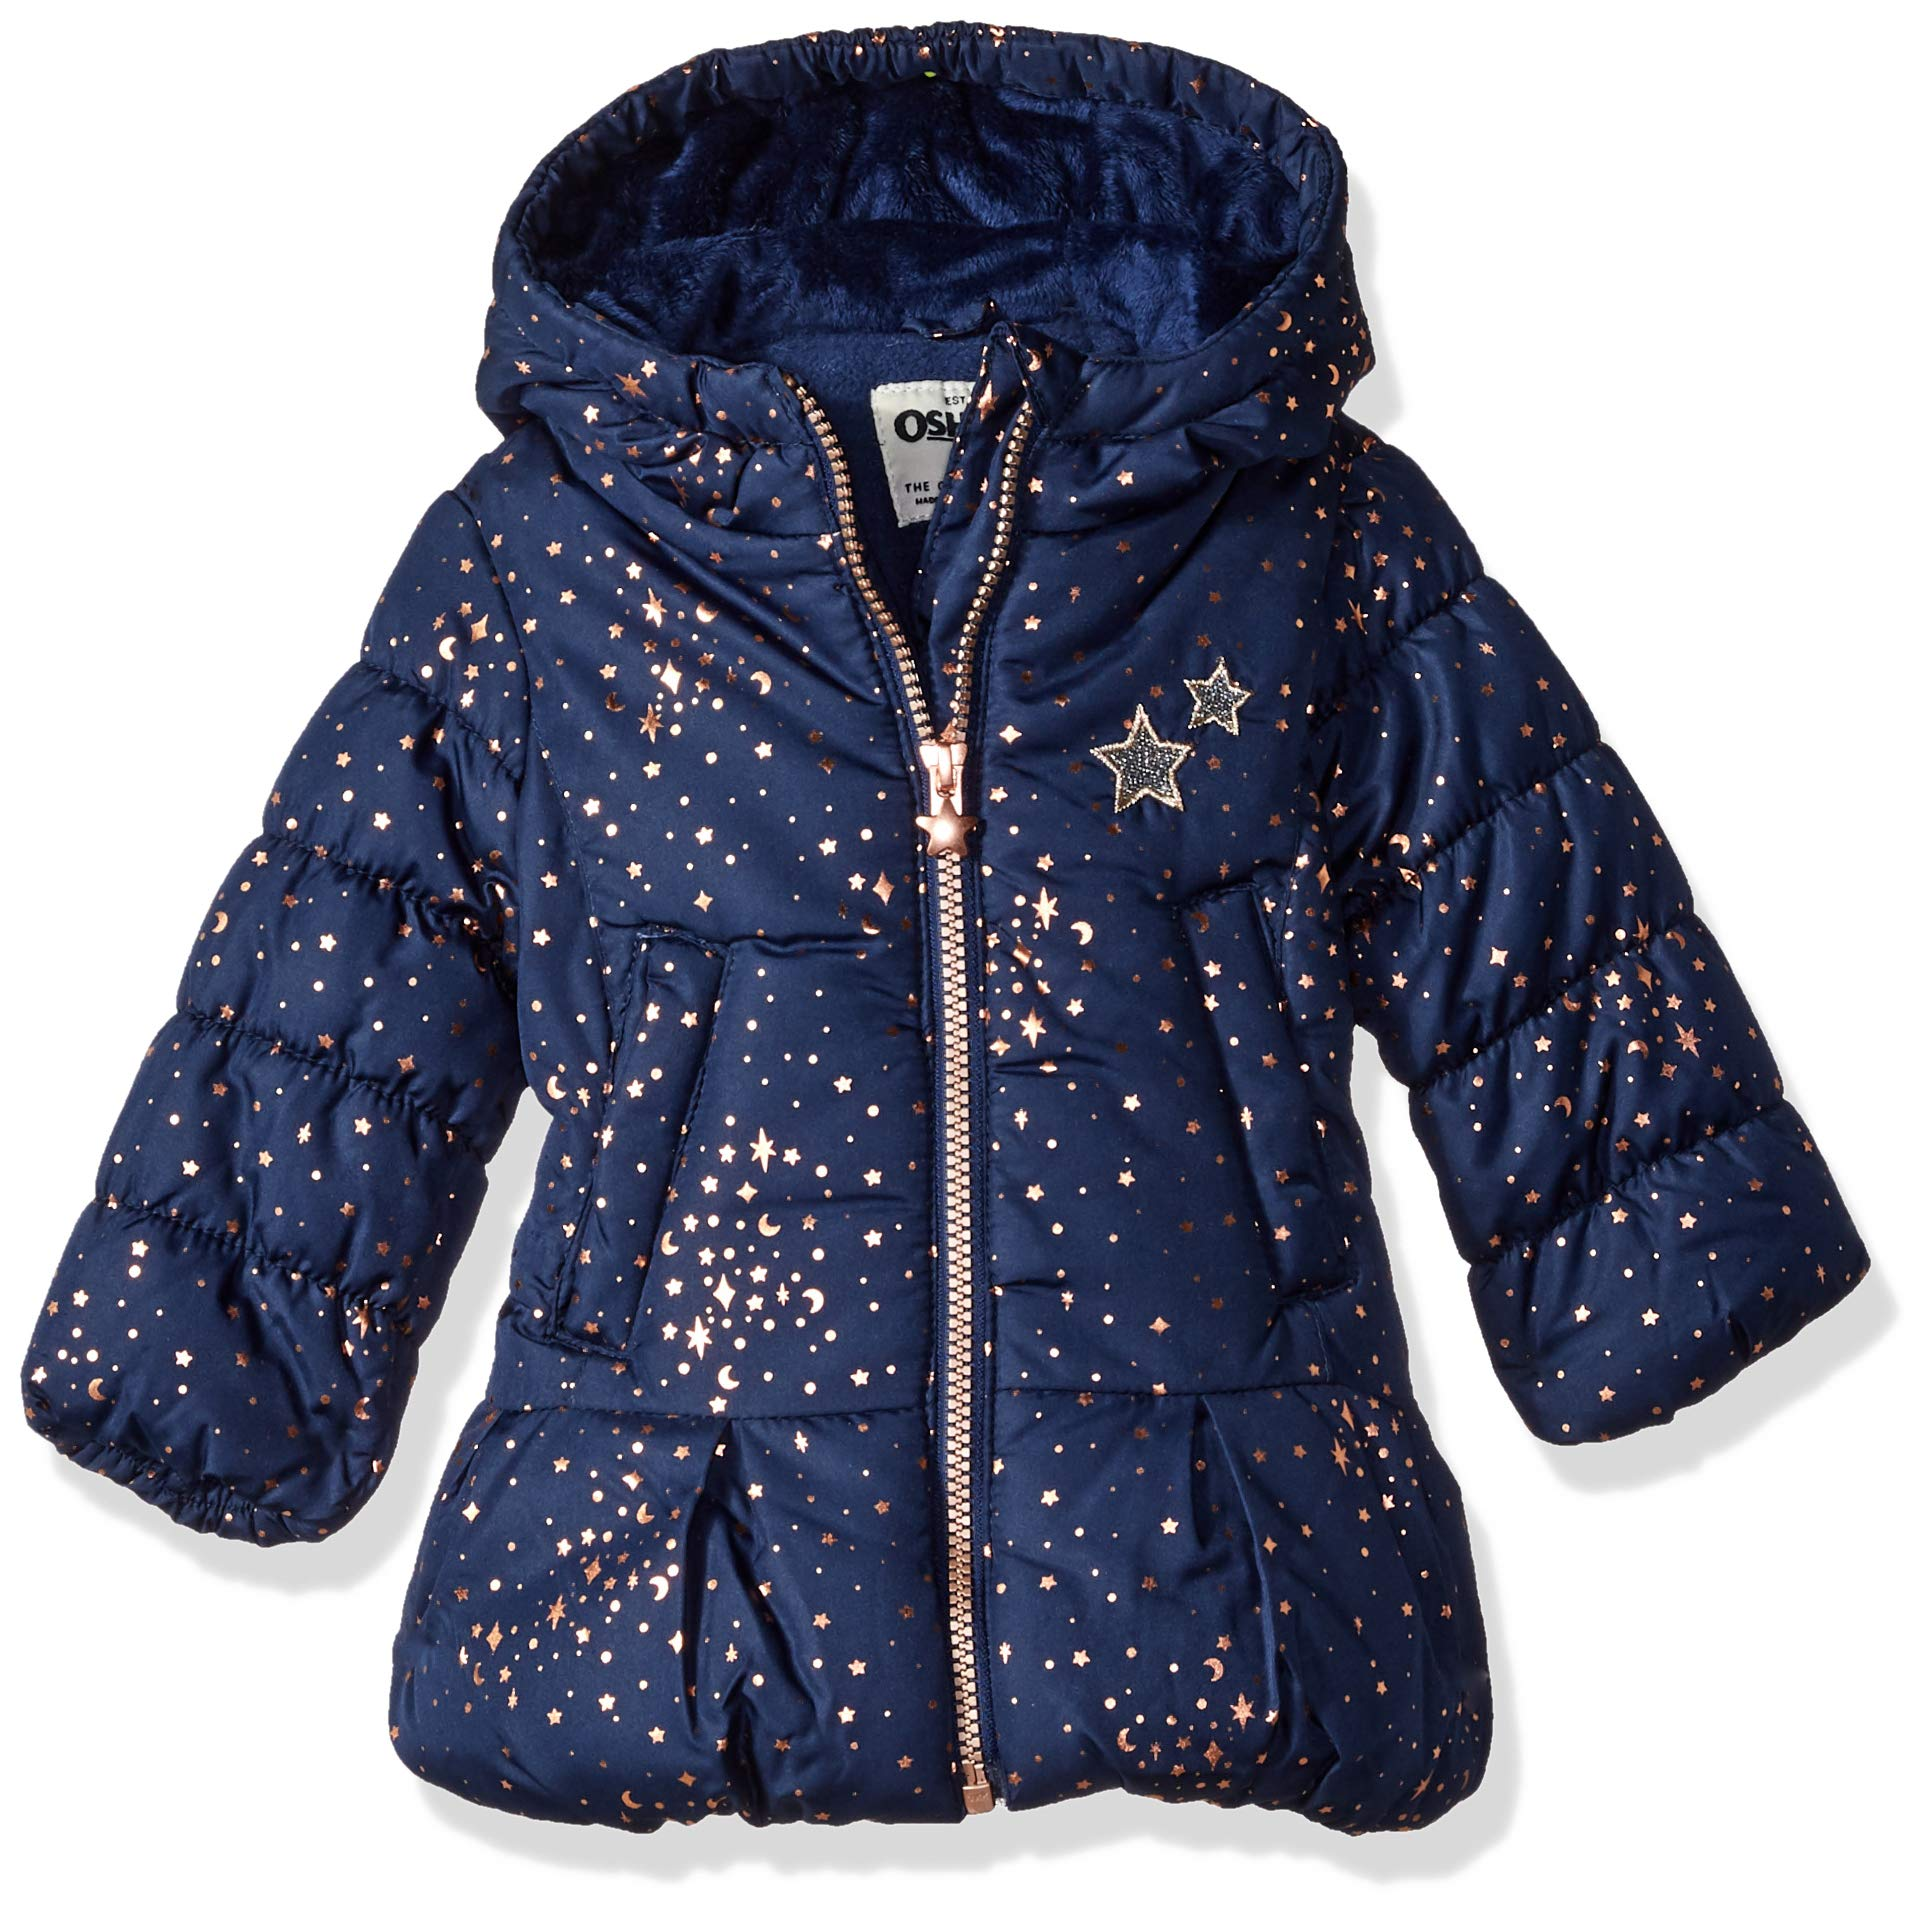 Osh Kosh Baby Girls Hooded Peplum Jacket Coat, Navy, 18M by OshKosh B'Gosh